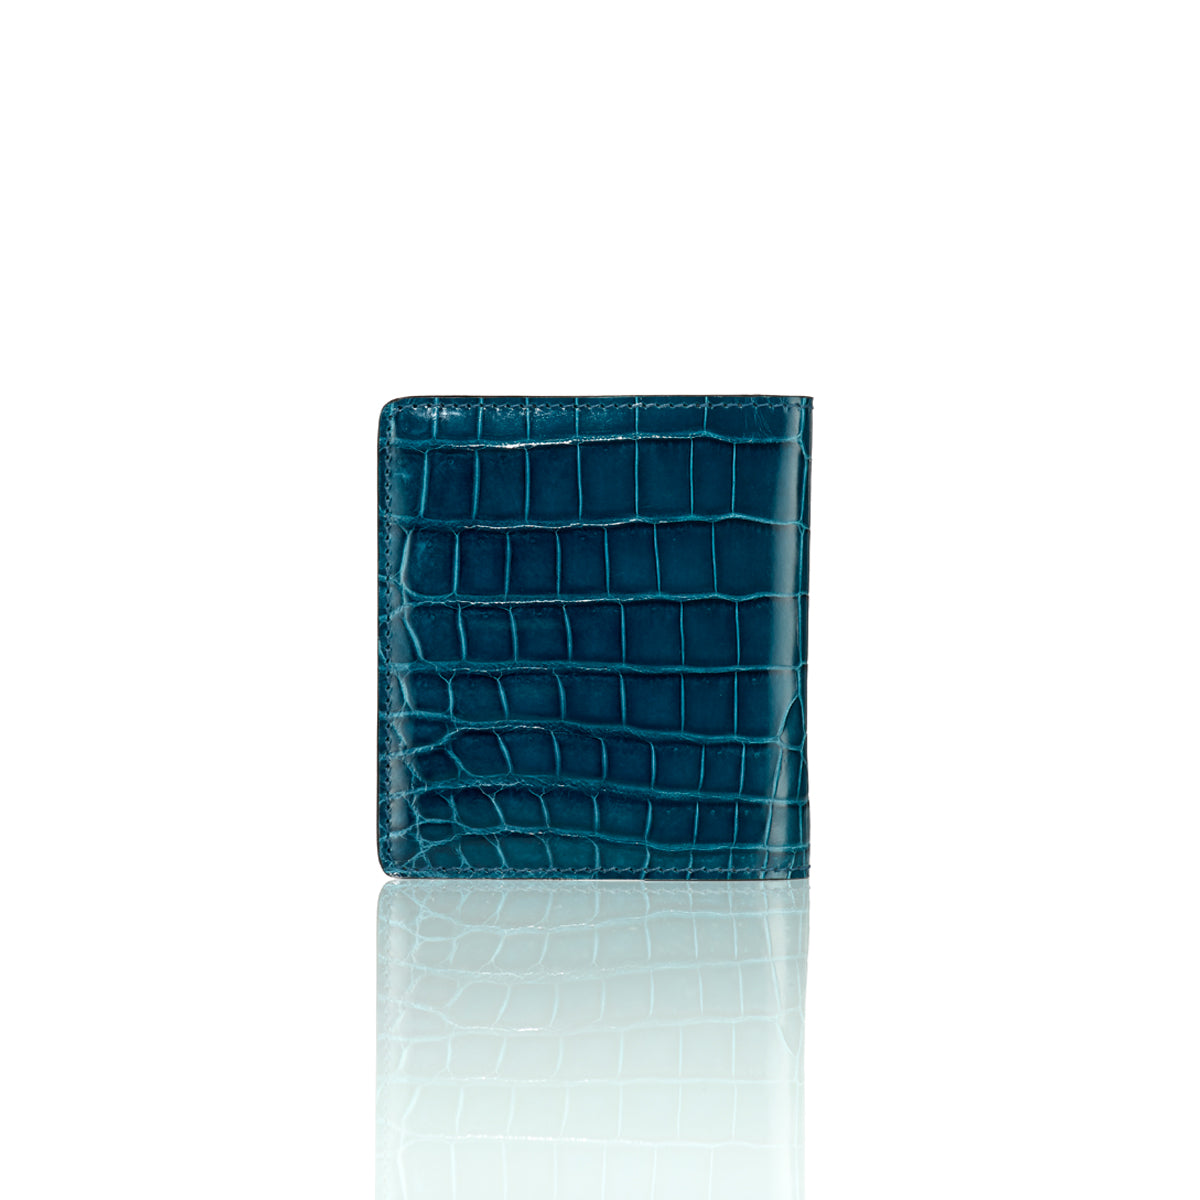 Bi-Fold Wallet - Coastal Blue Alligator